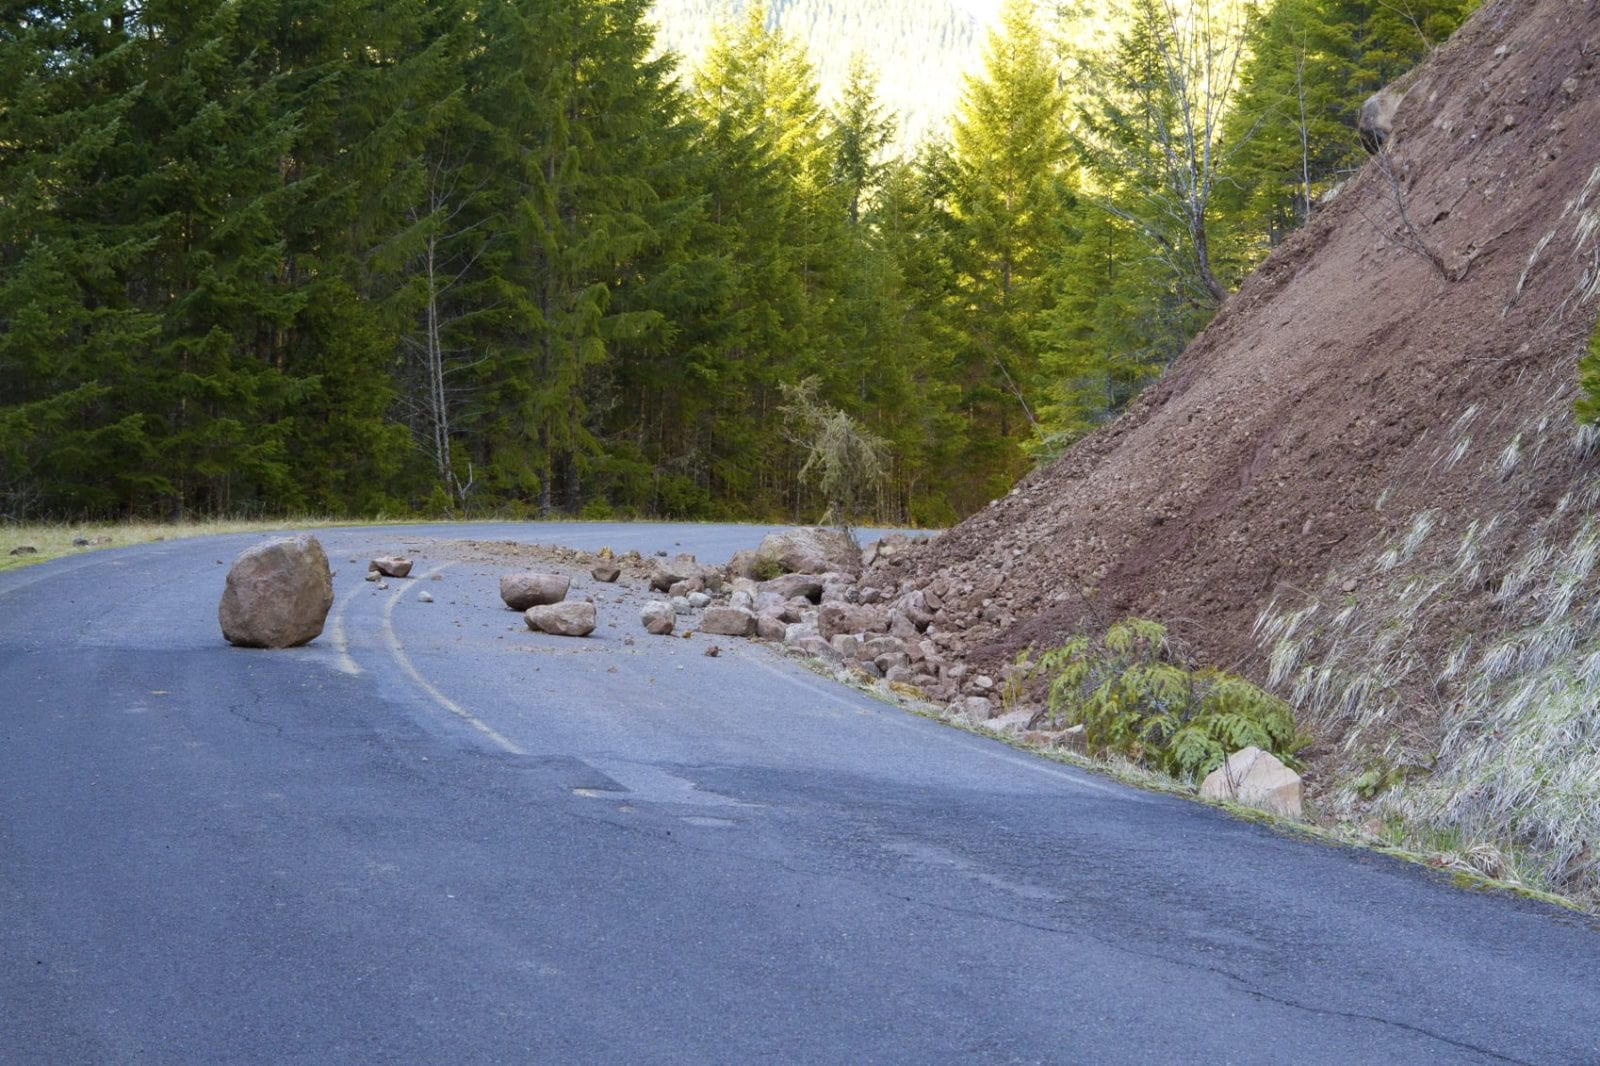 Falling Rocks On A Rural Road Stock Photo